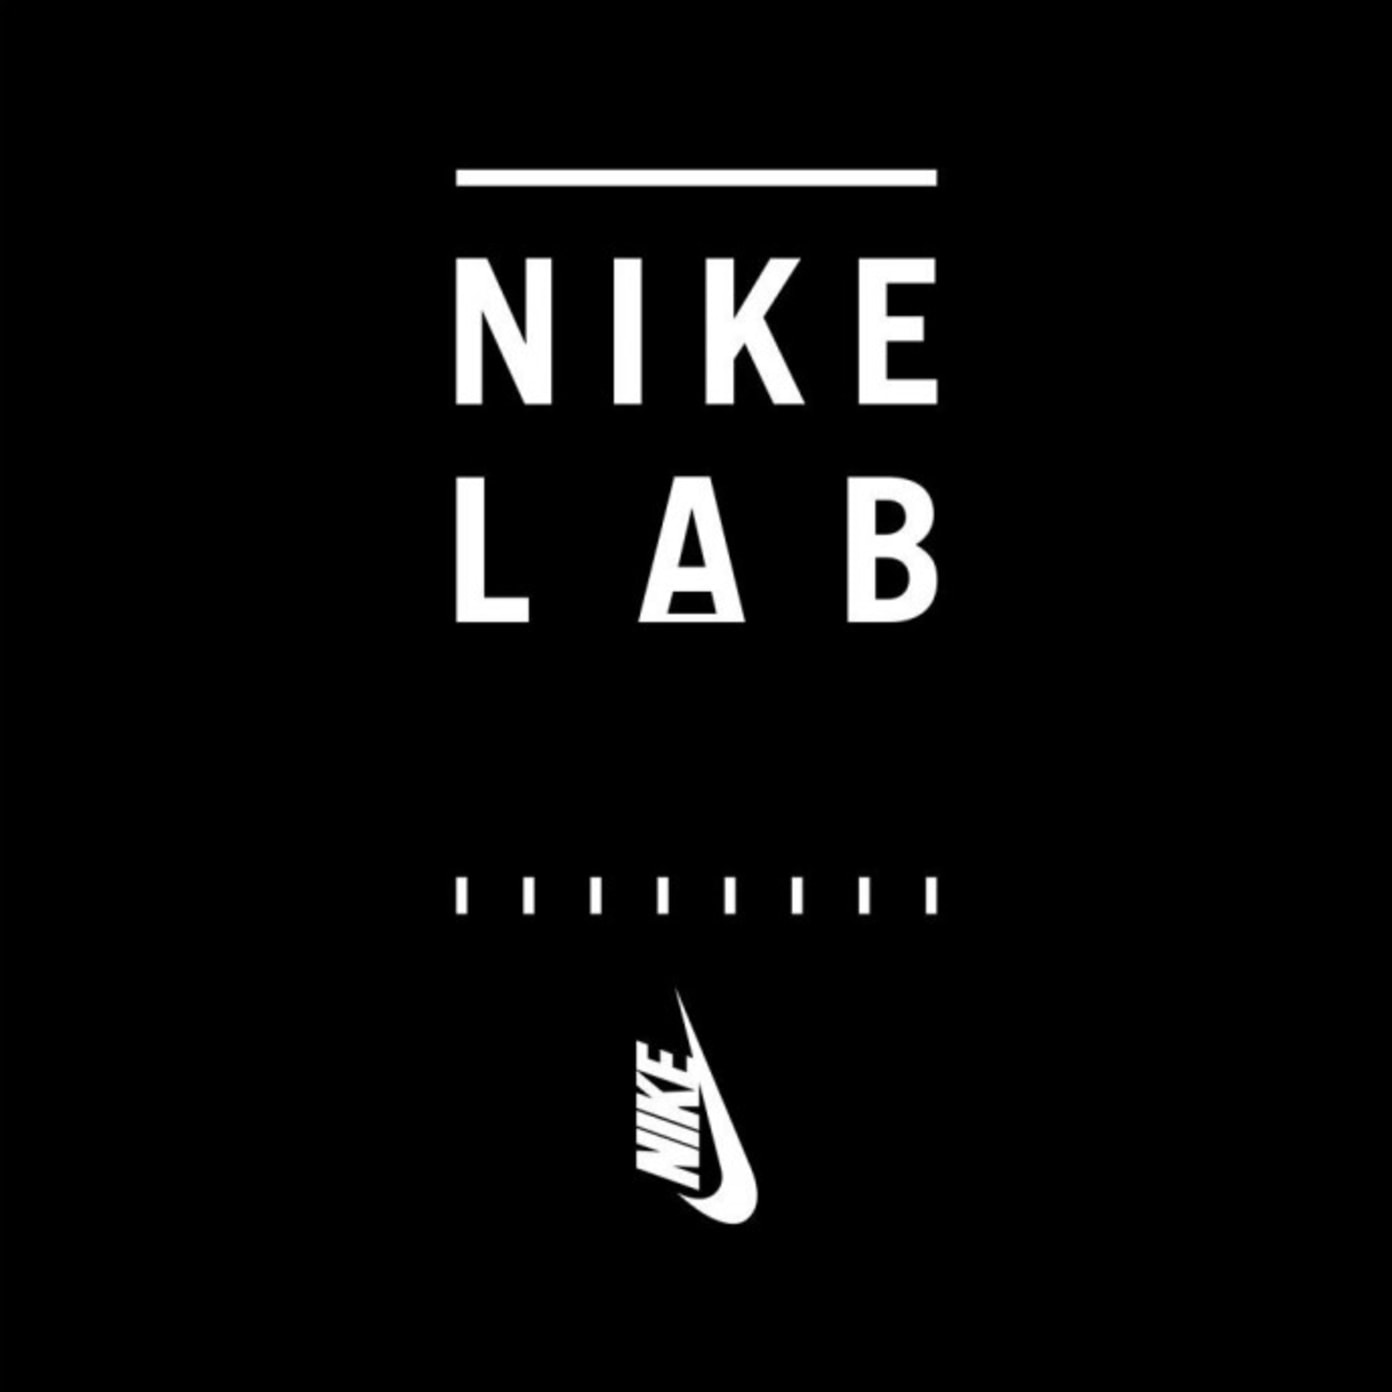 #FactsFriday – What is Nikelab?